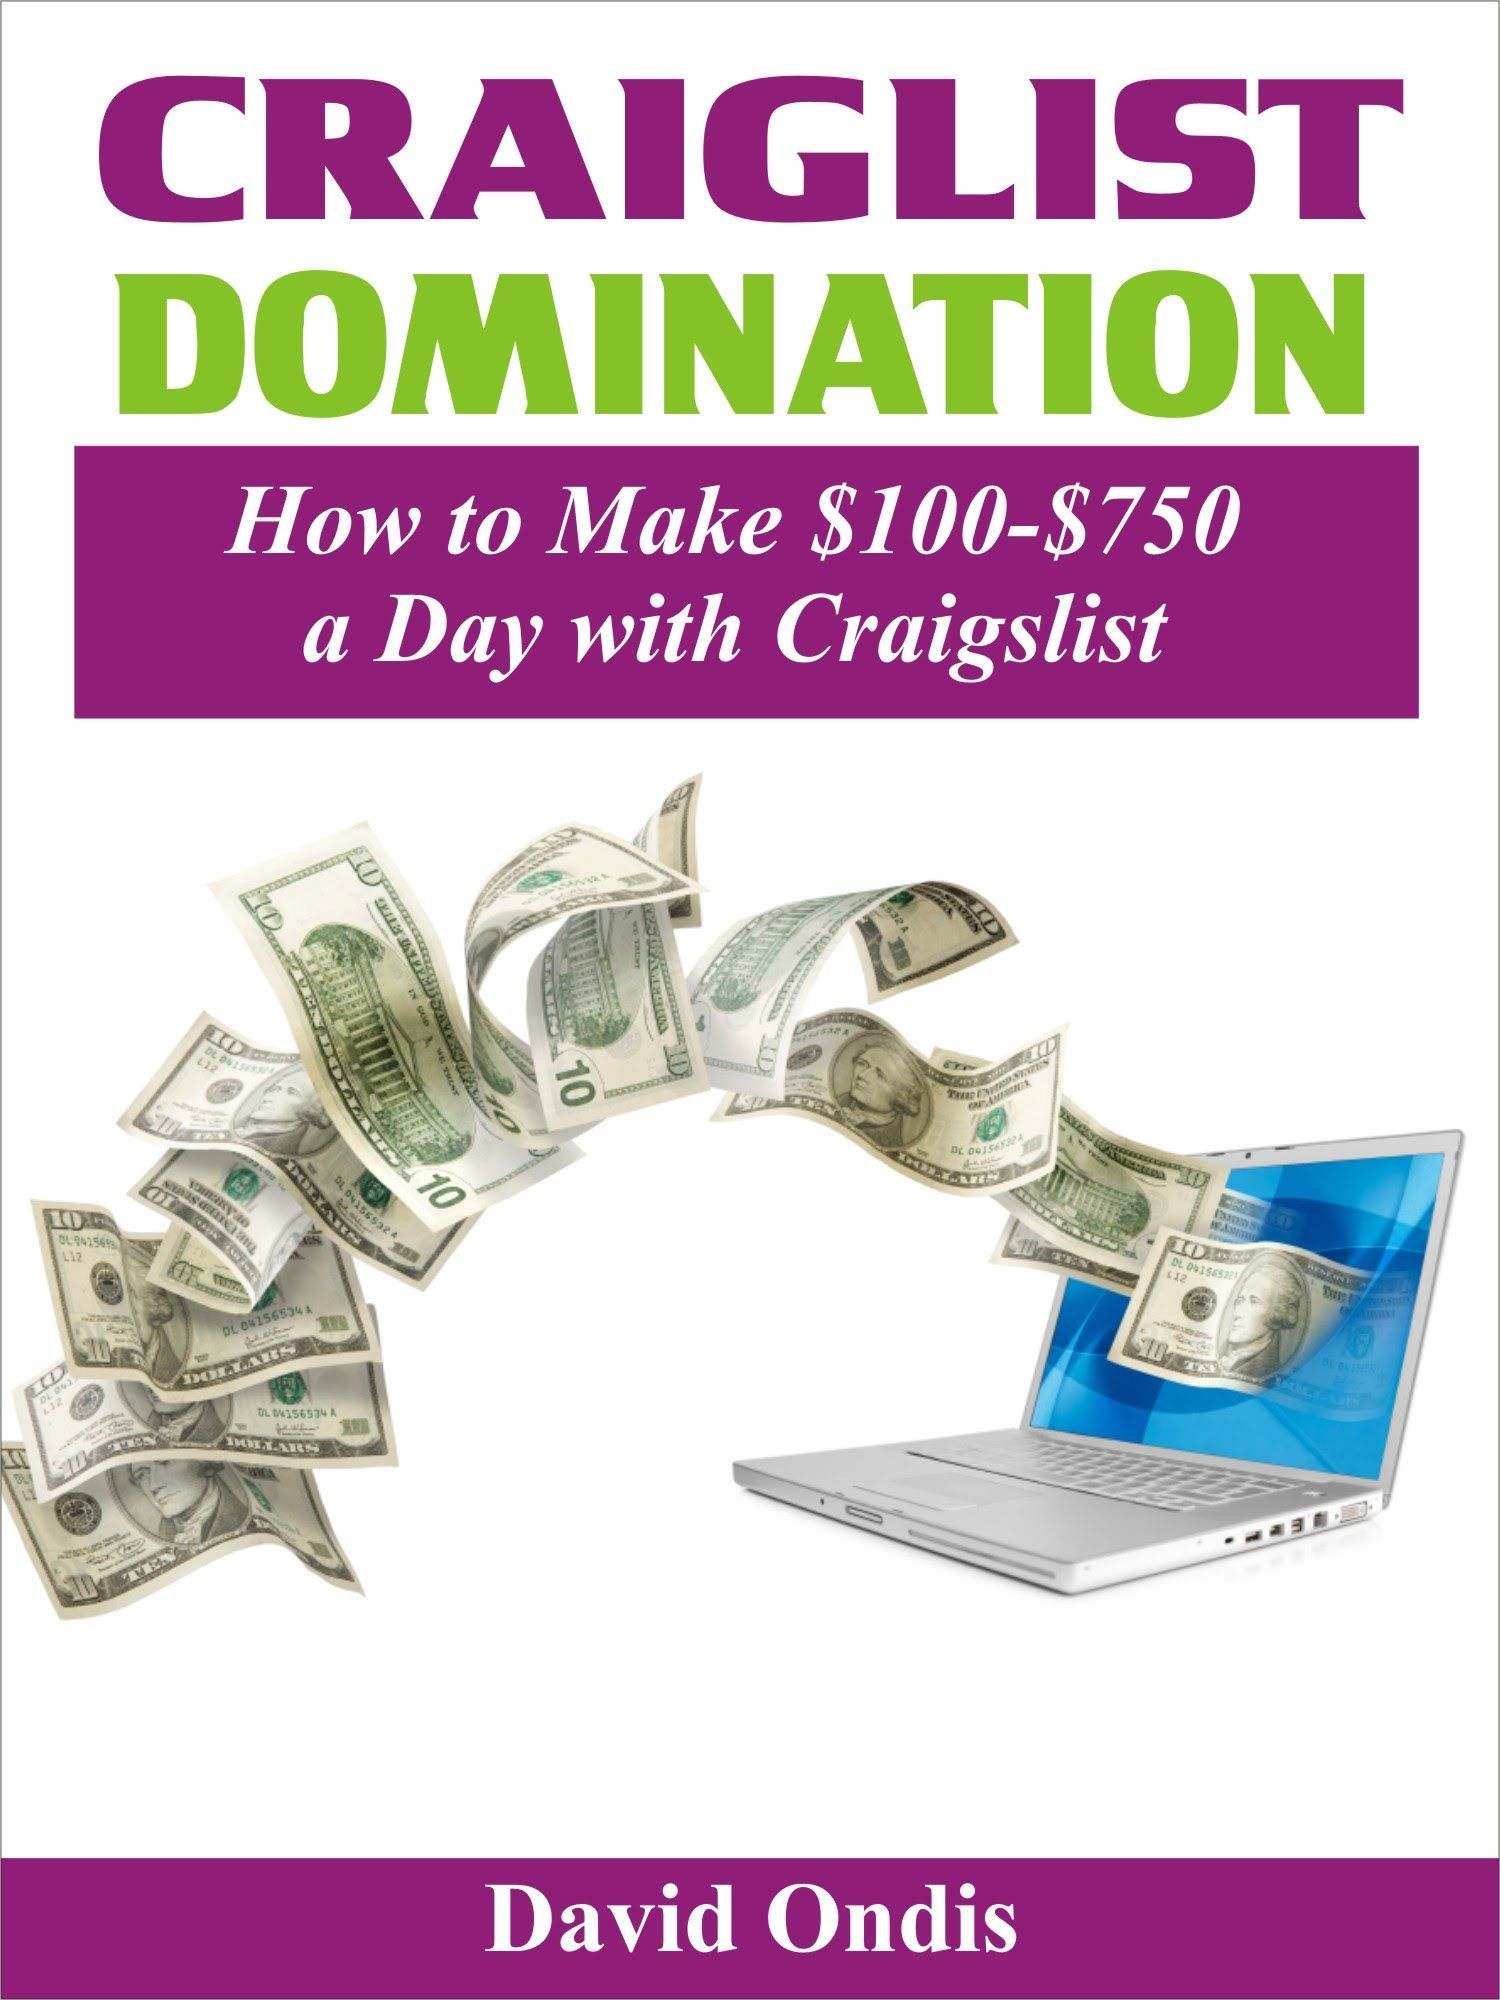 Craigslist Domination Your Guide To Online Success 9 95 Launches March 17th Dominant Money Advice Online Networking